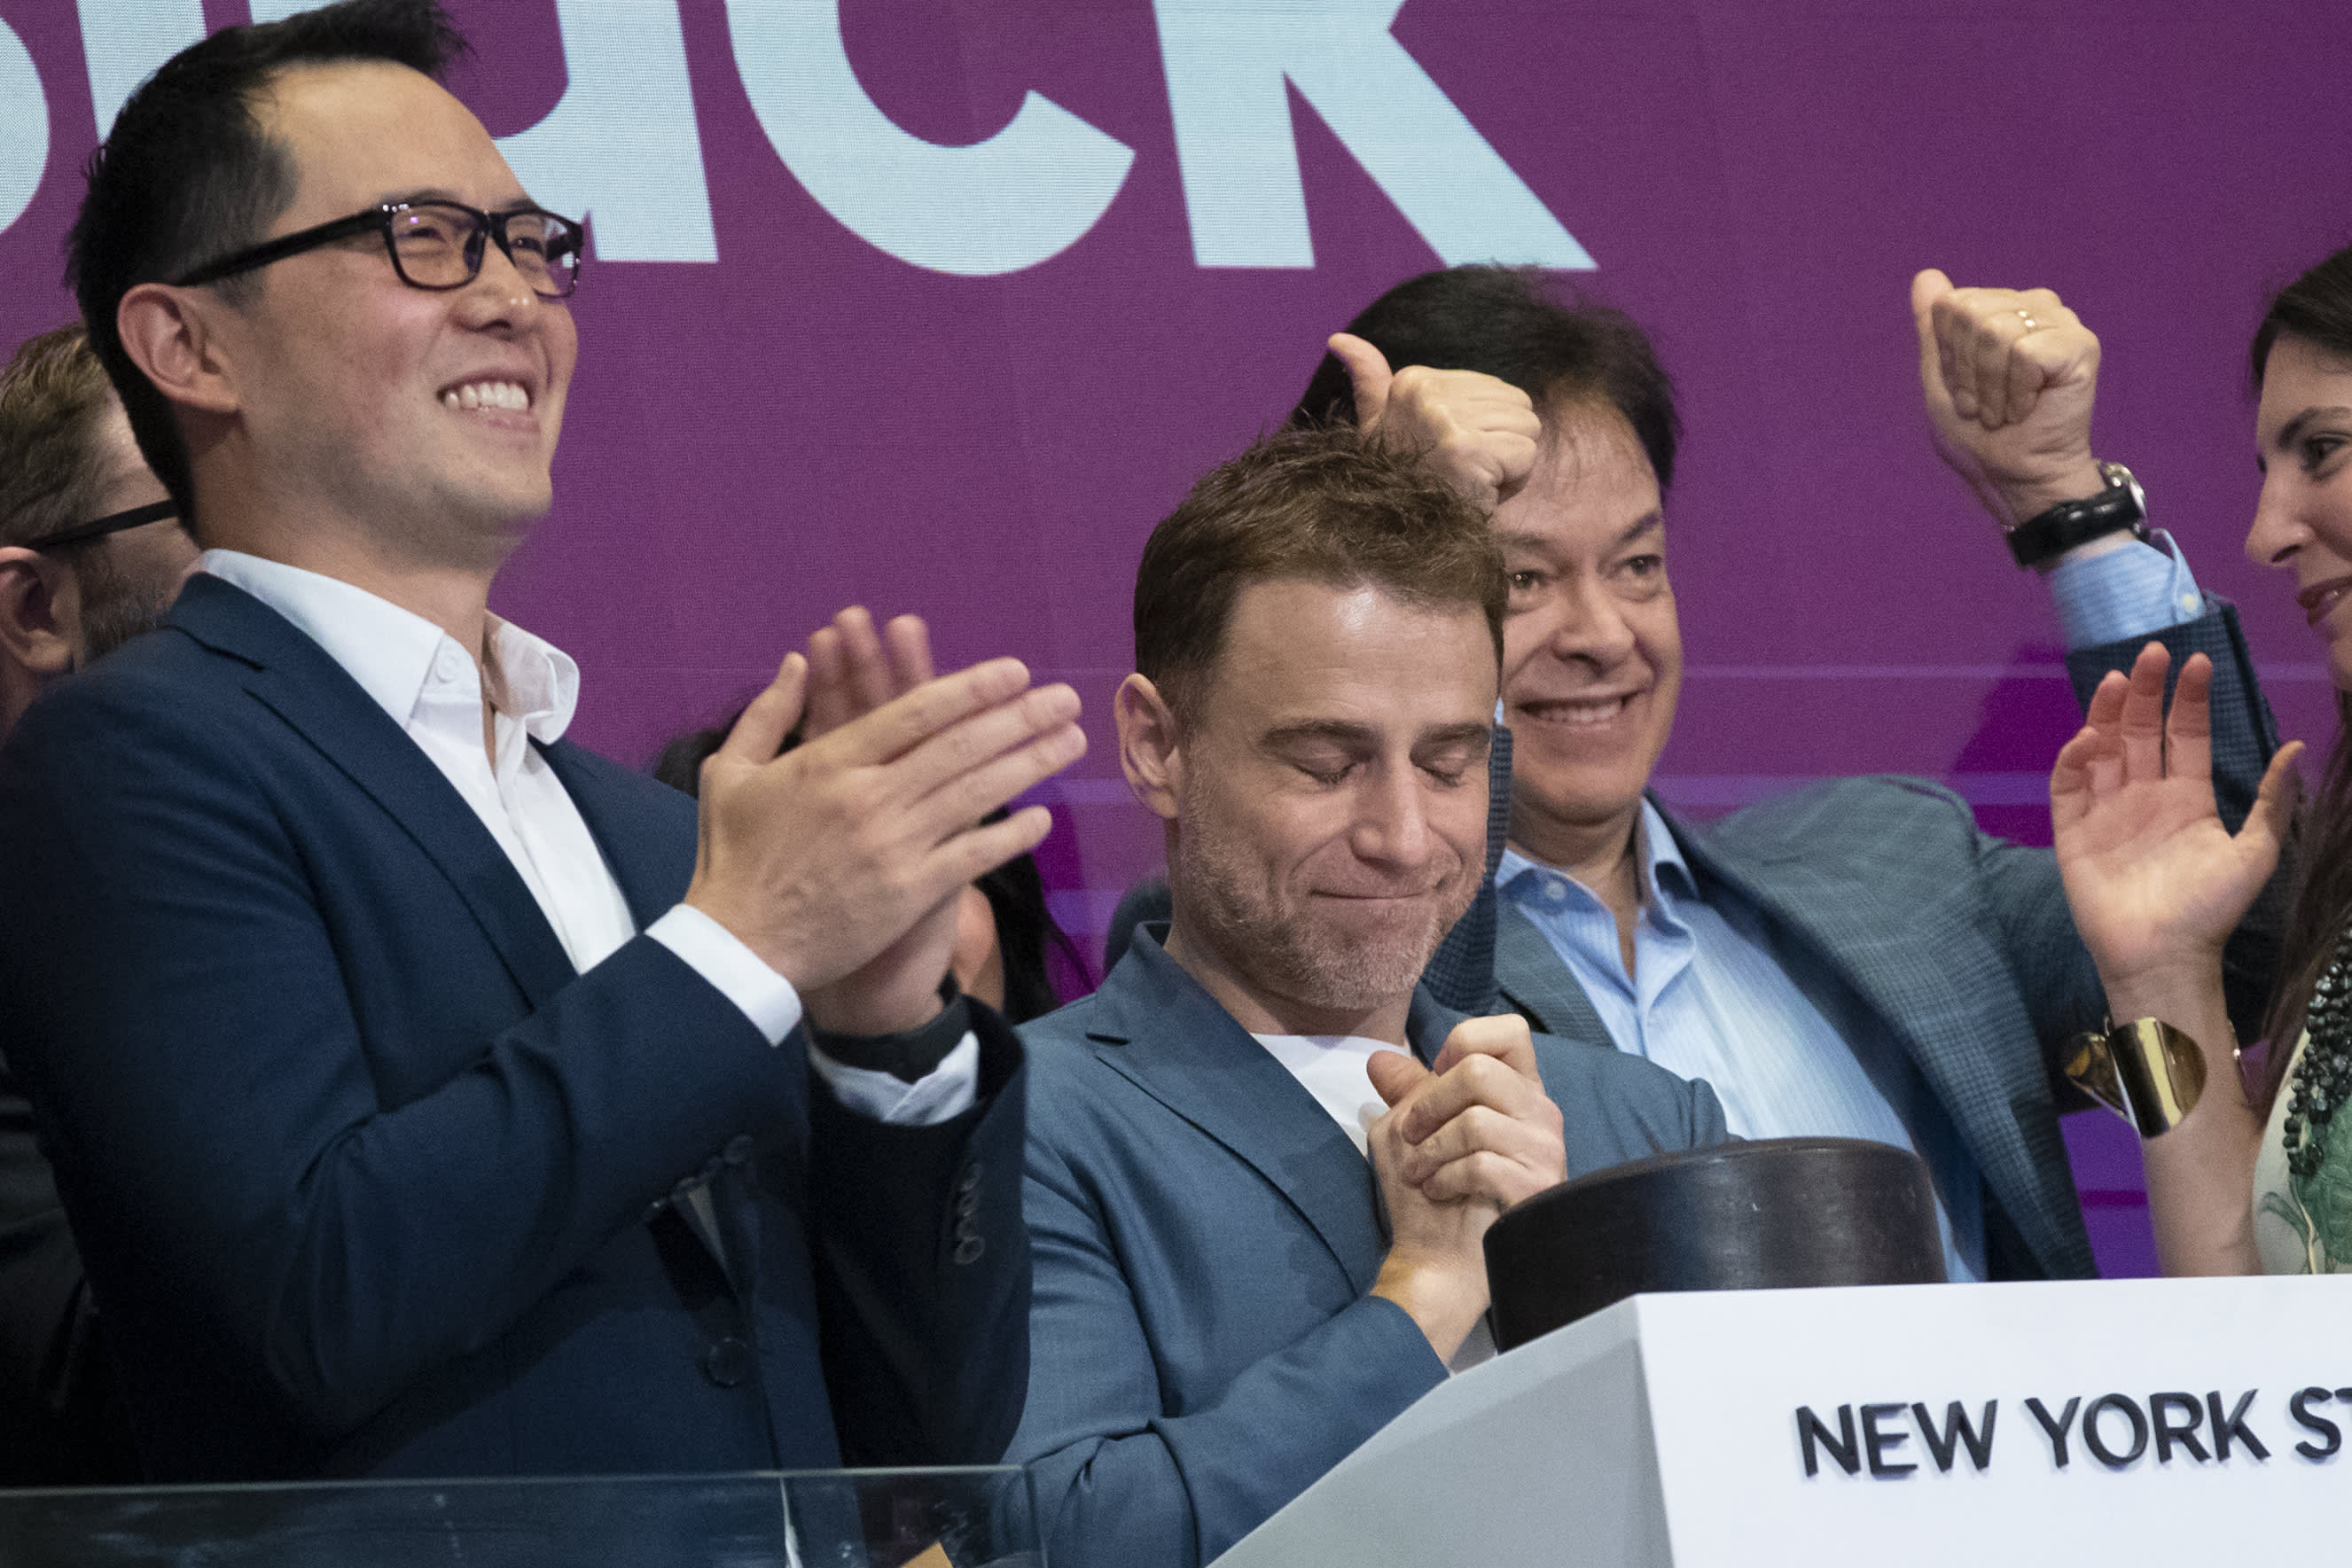 Slack shares surge 60% over reference price in market debut